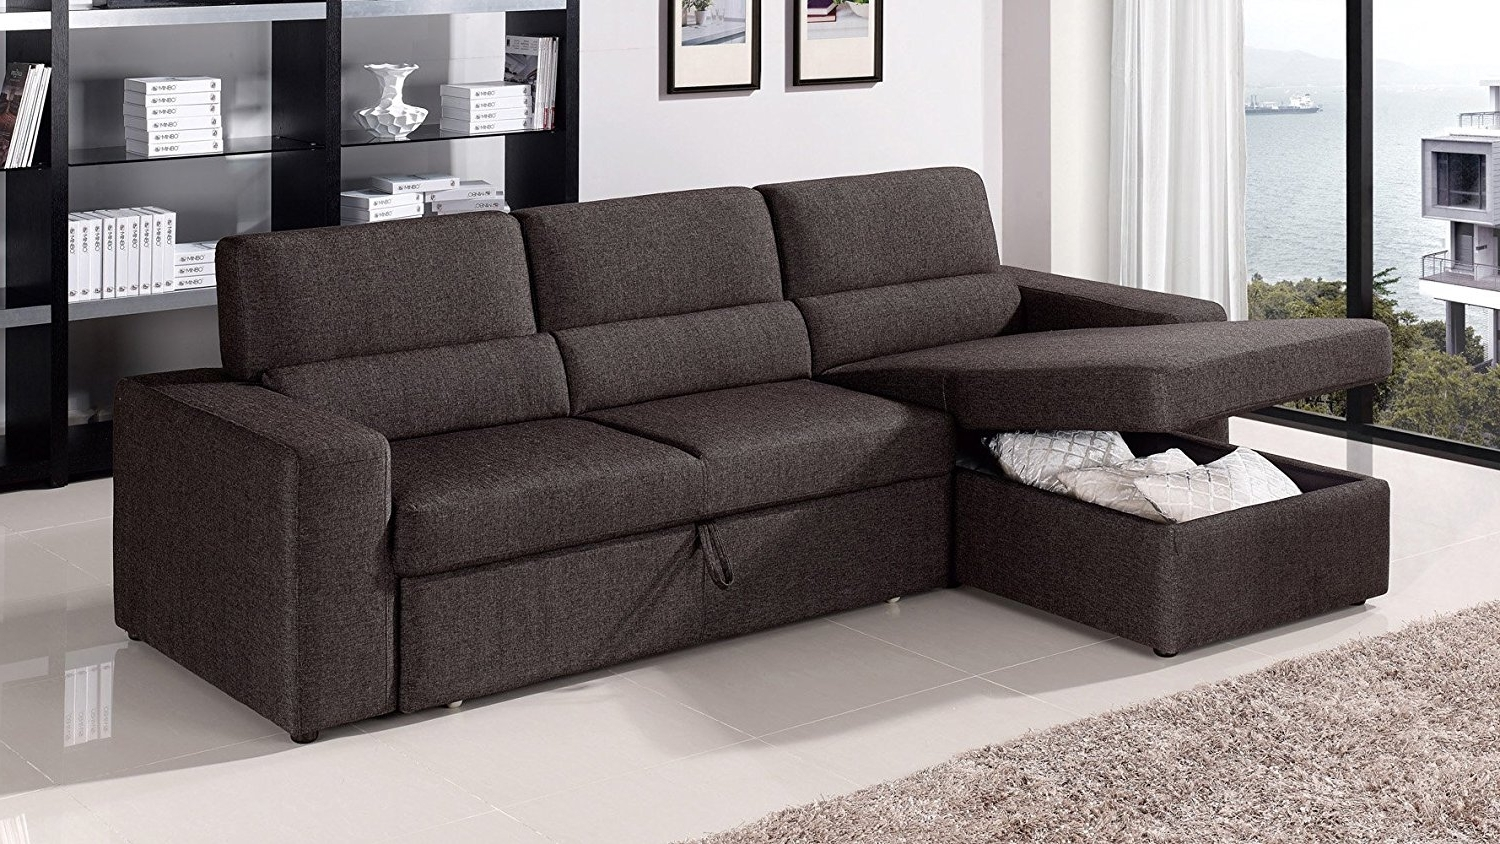 Well Known Amazon: Black/brown Clubber Sleeper Sectional Sofa – Left With Regard To Sofas With Chaise (View 3 of 15)